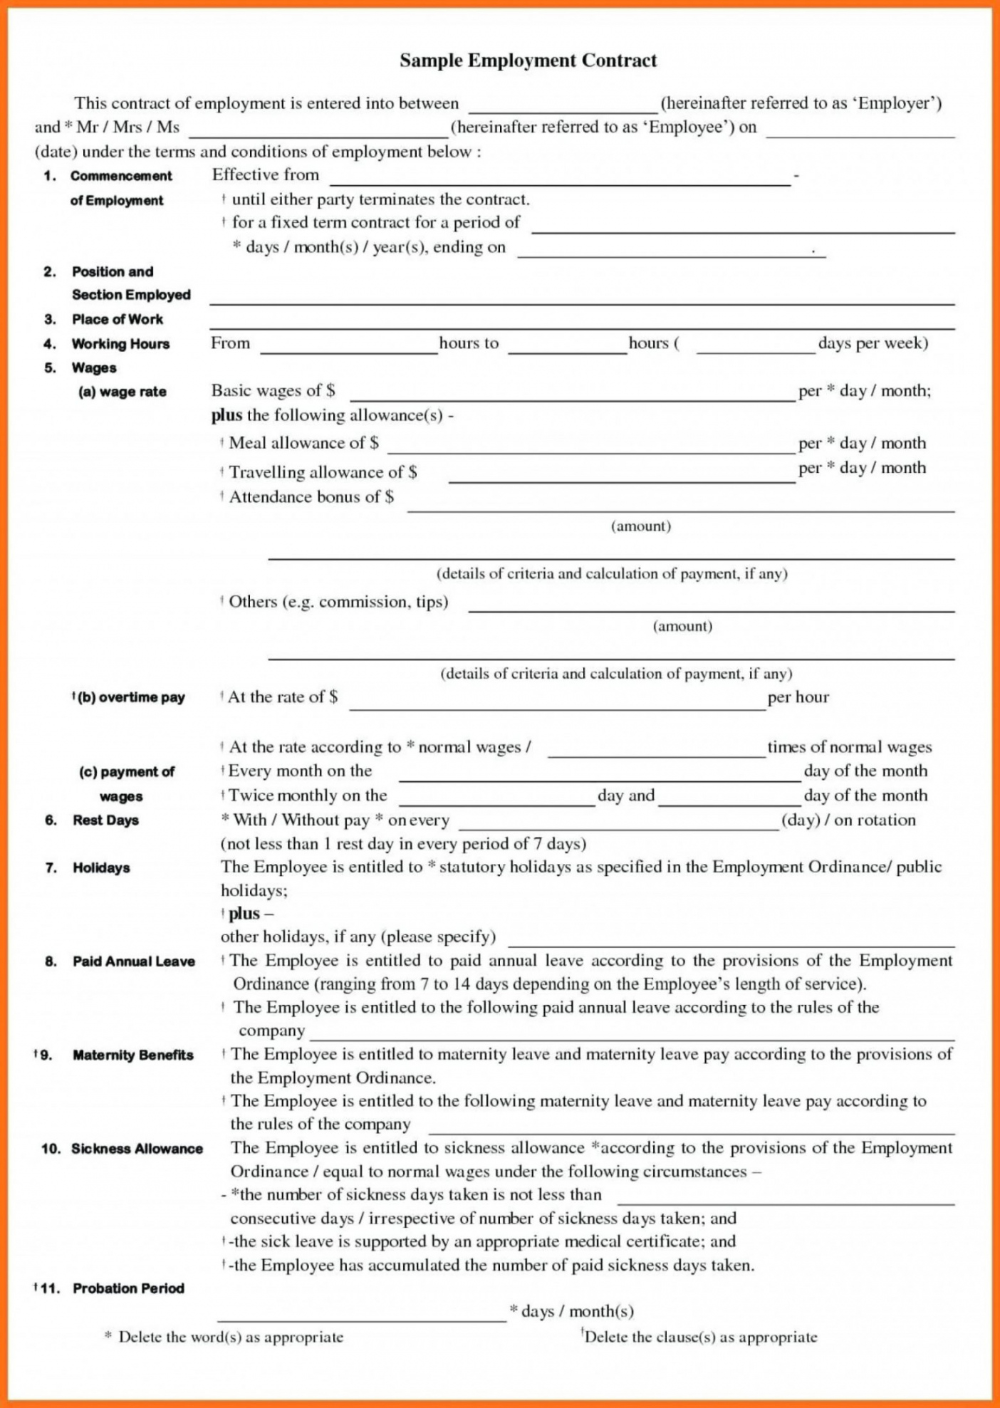 Free 020 Employment Agreement Template Contract Of Example Contracts Casual Labour Contract Template An Nanny Contract Template Contract Jobs Contract Template